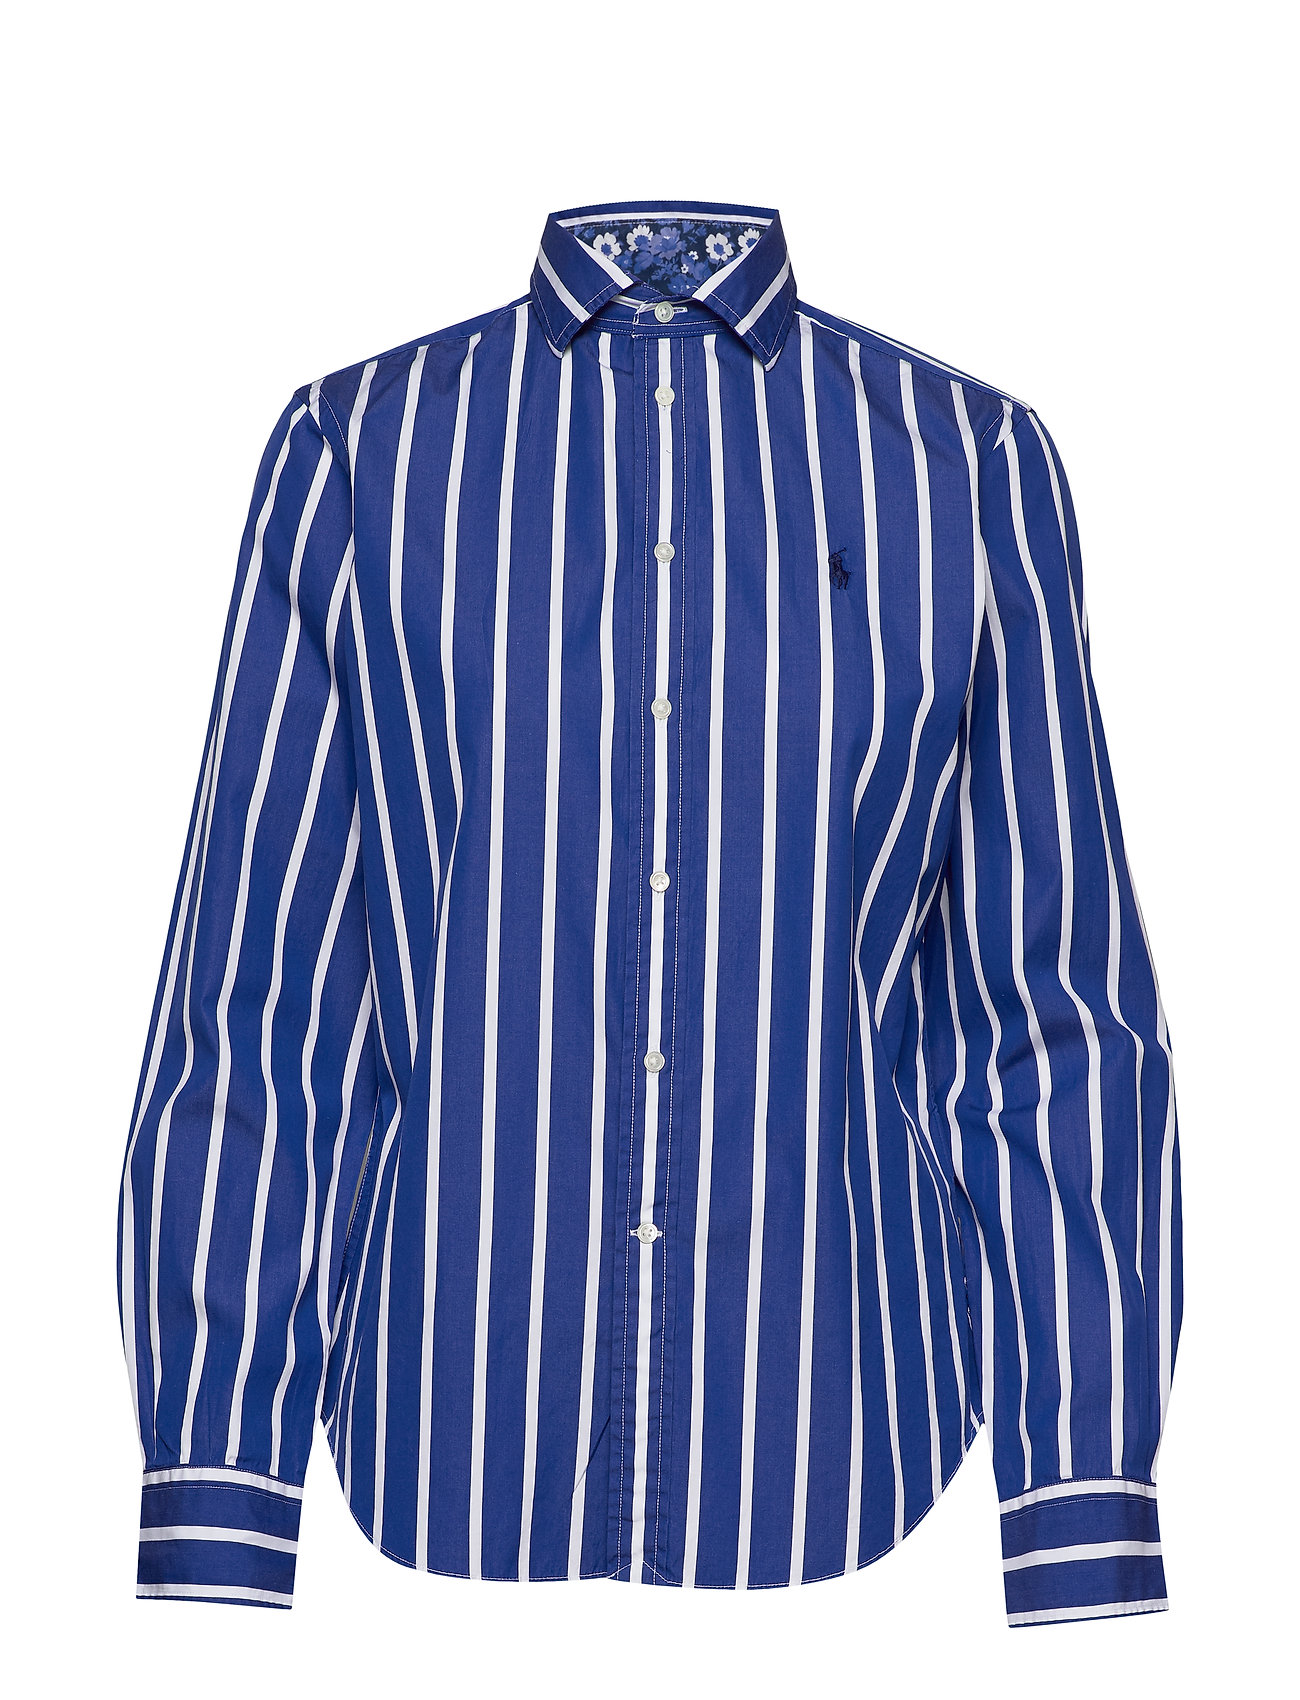 Polo Ralph Lauren Striped Cotton Shirt - 513 BLUE/WHITE